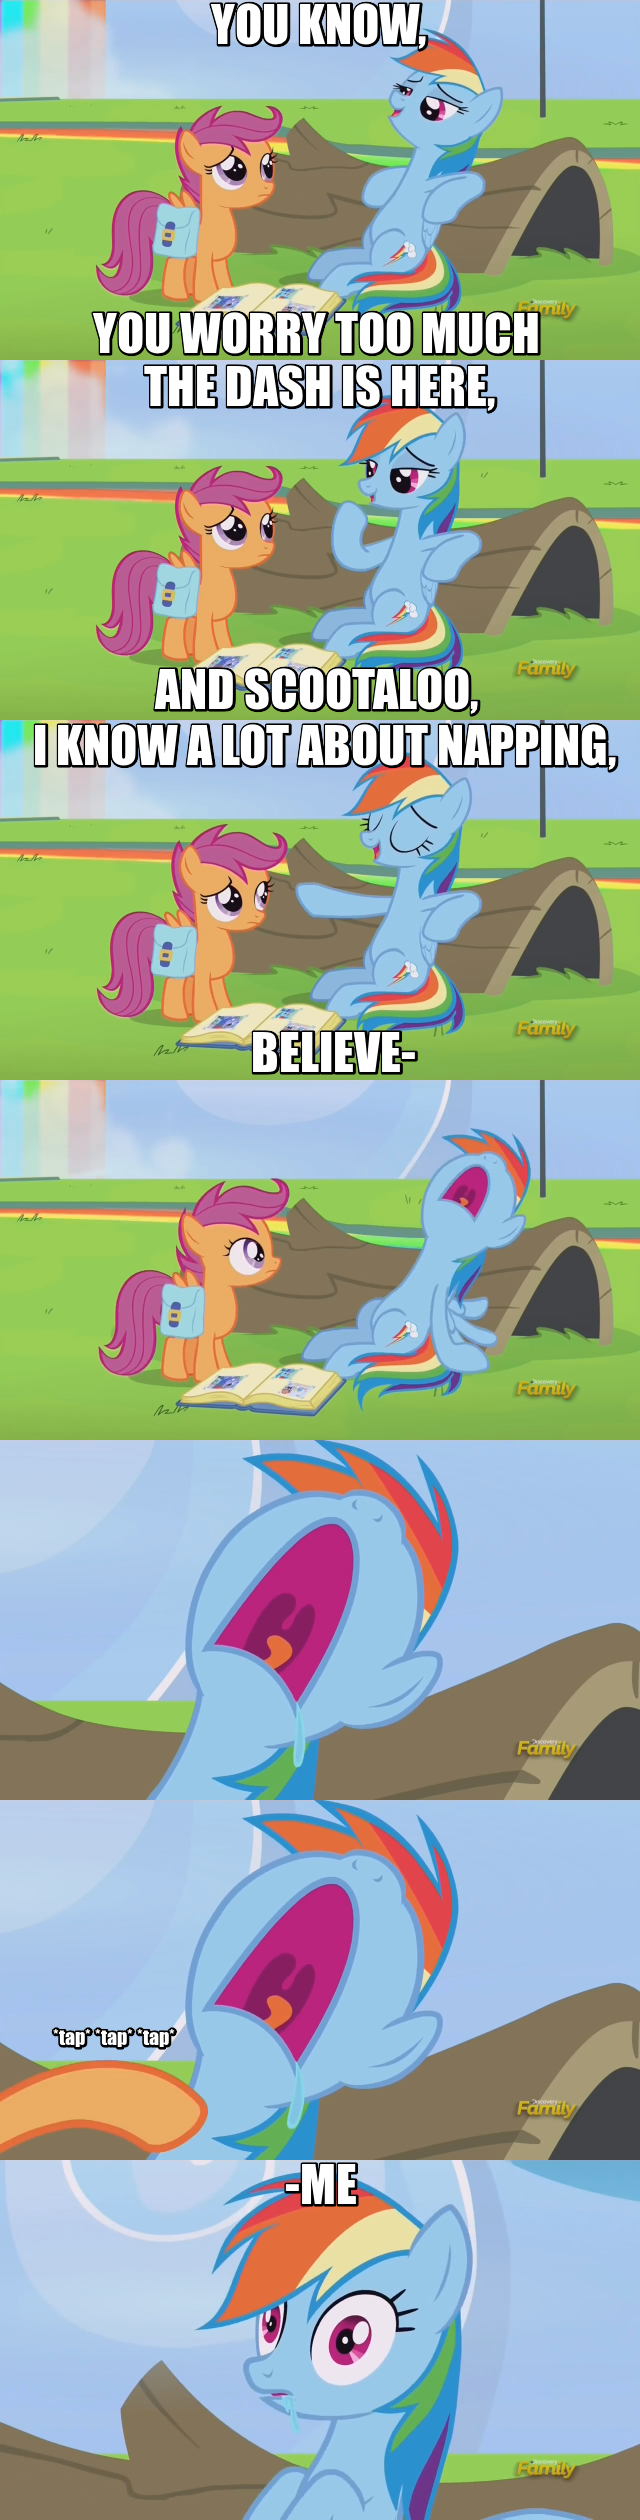 parental glideance screencap SpongeBob SquarePants comic Scootaloo rainbow dash - 9037487616